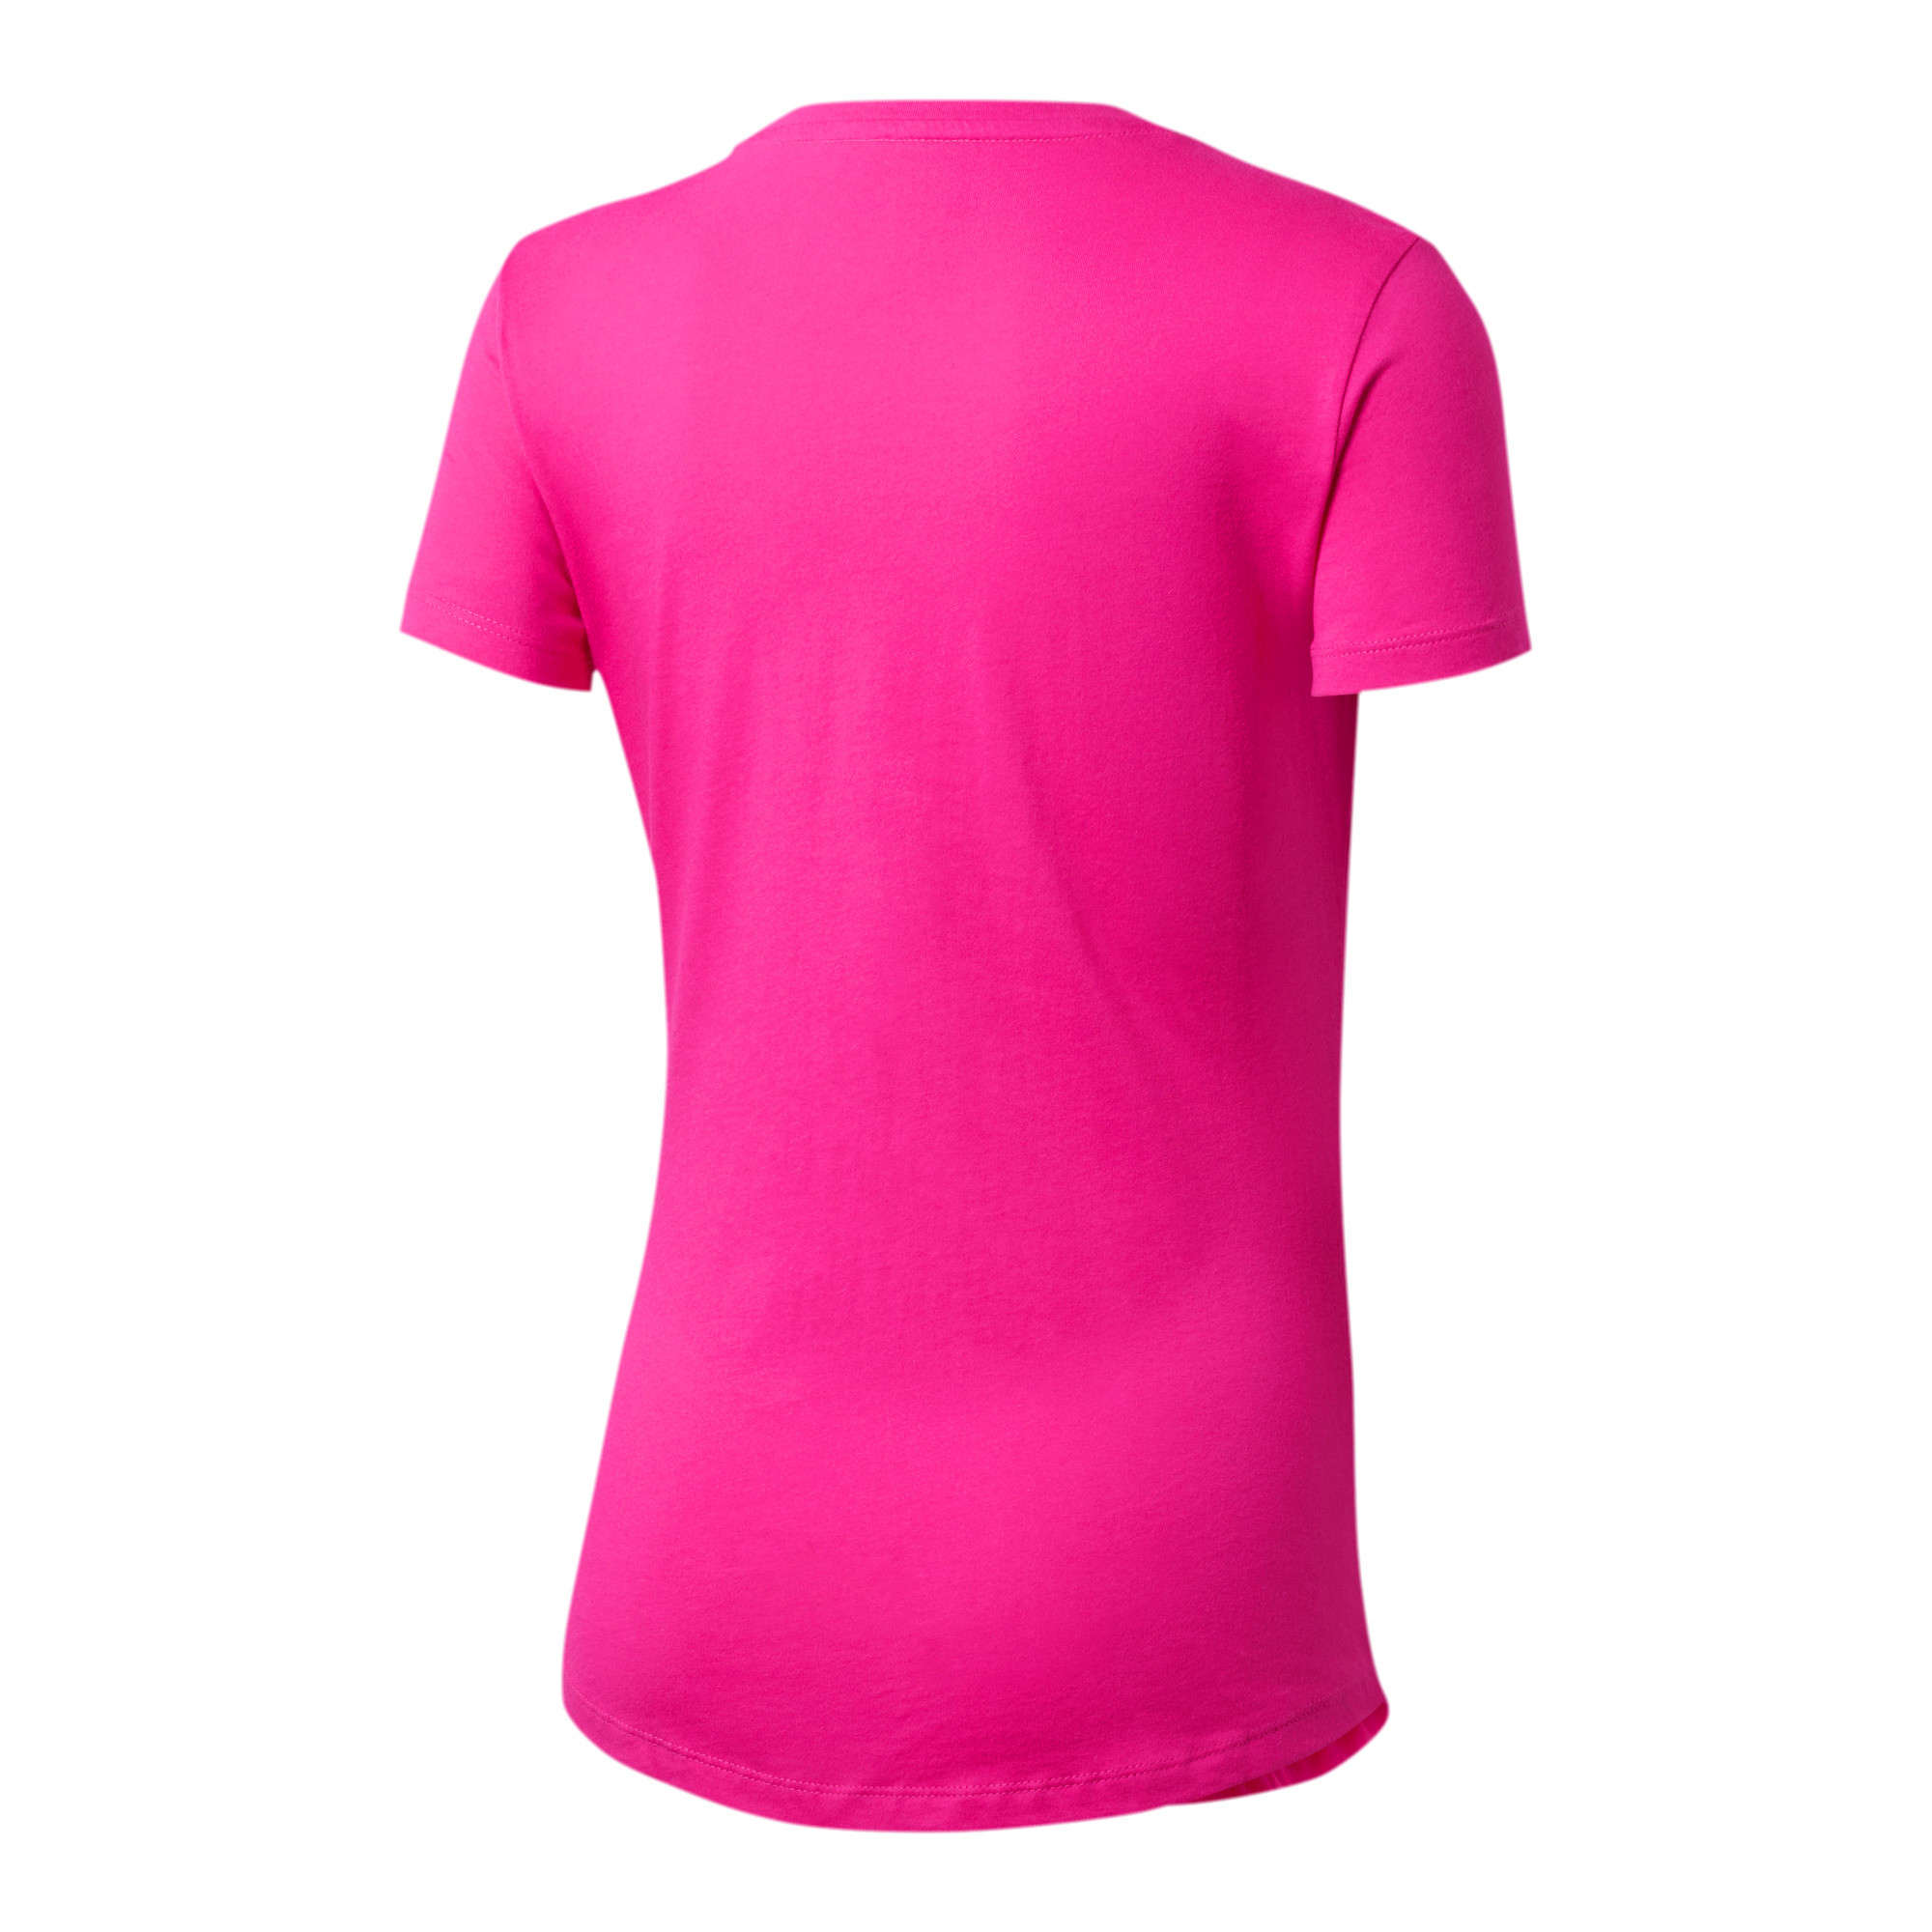 PUMA-Essentials-Women-039-s-Tee-Women-Tee-Basics thumbnail 17